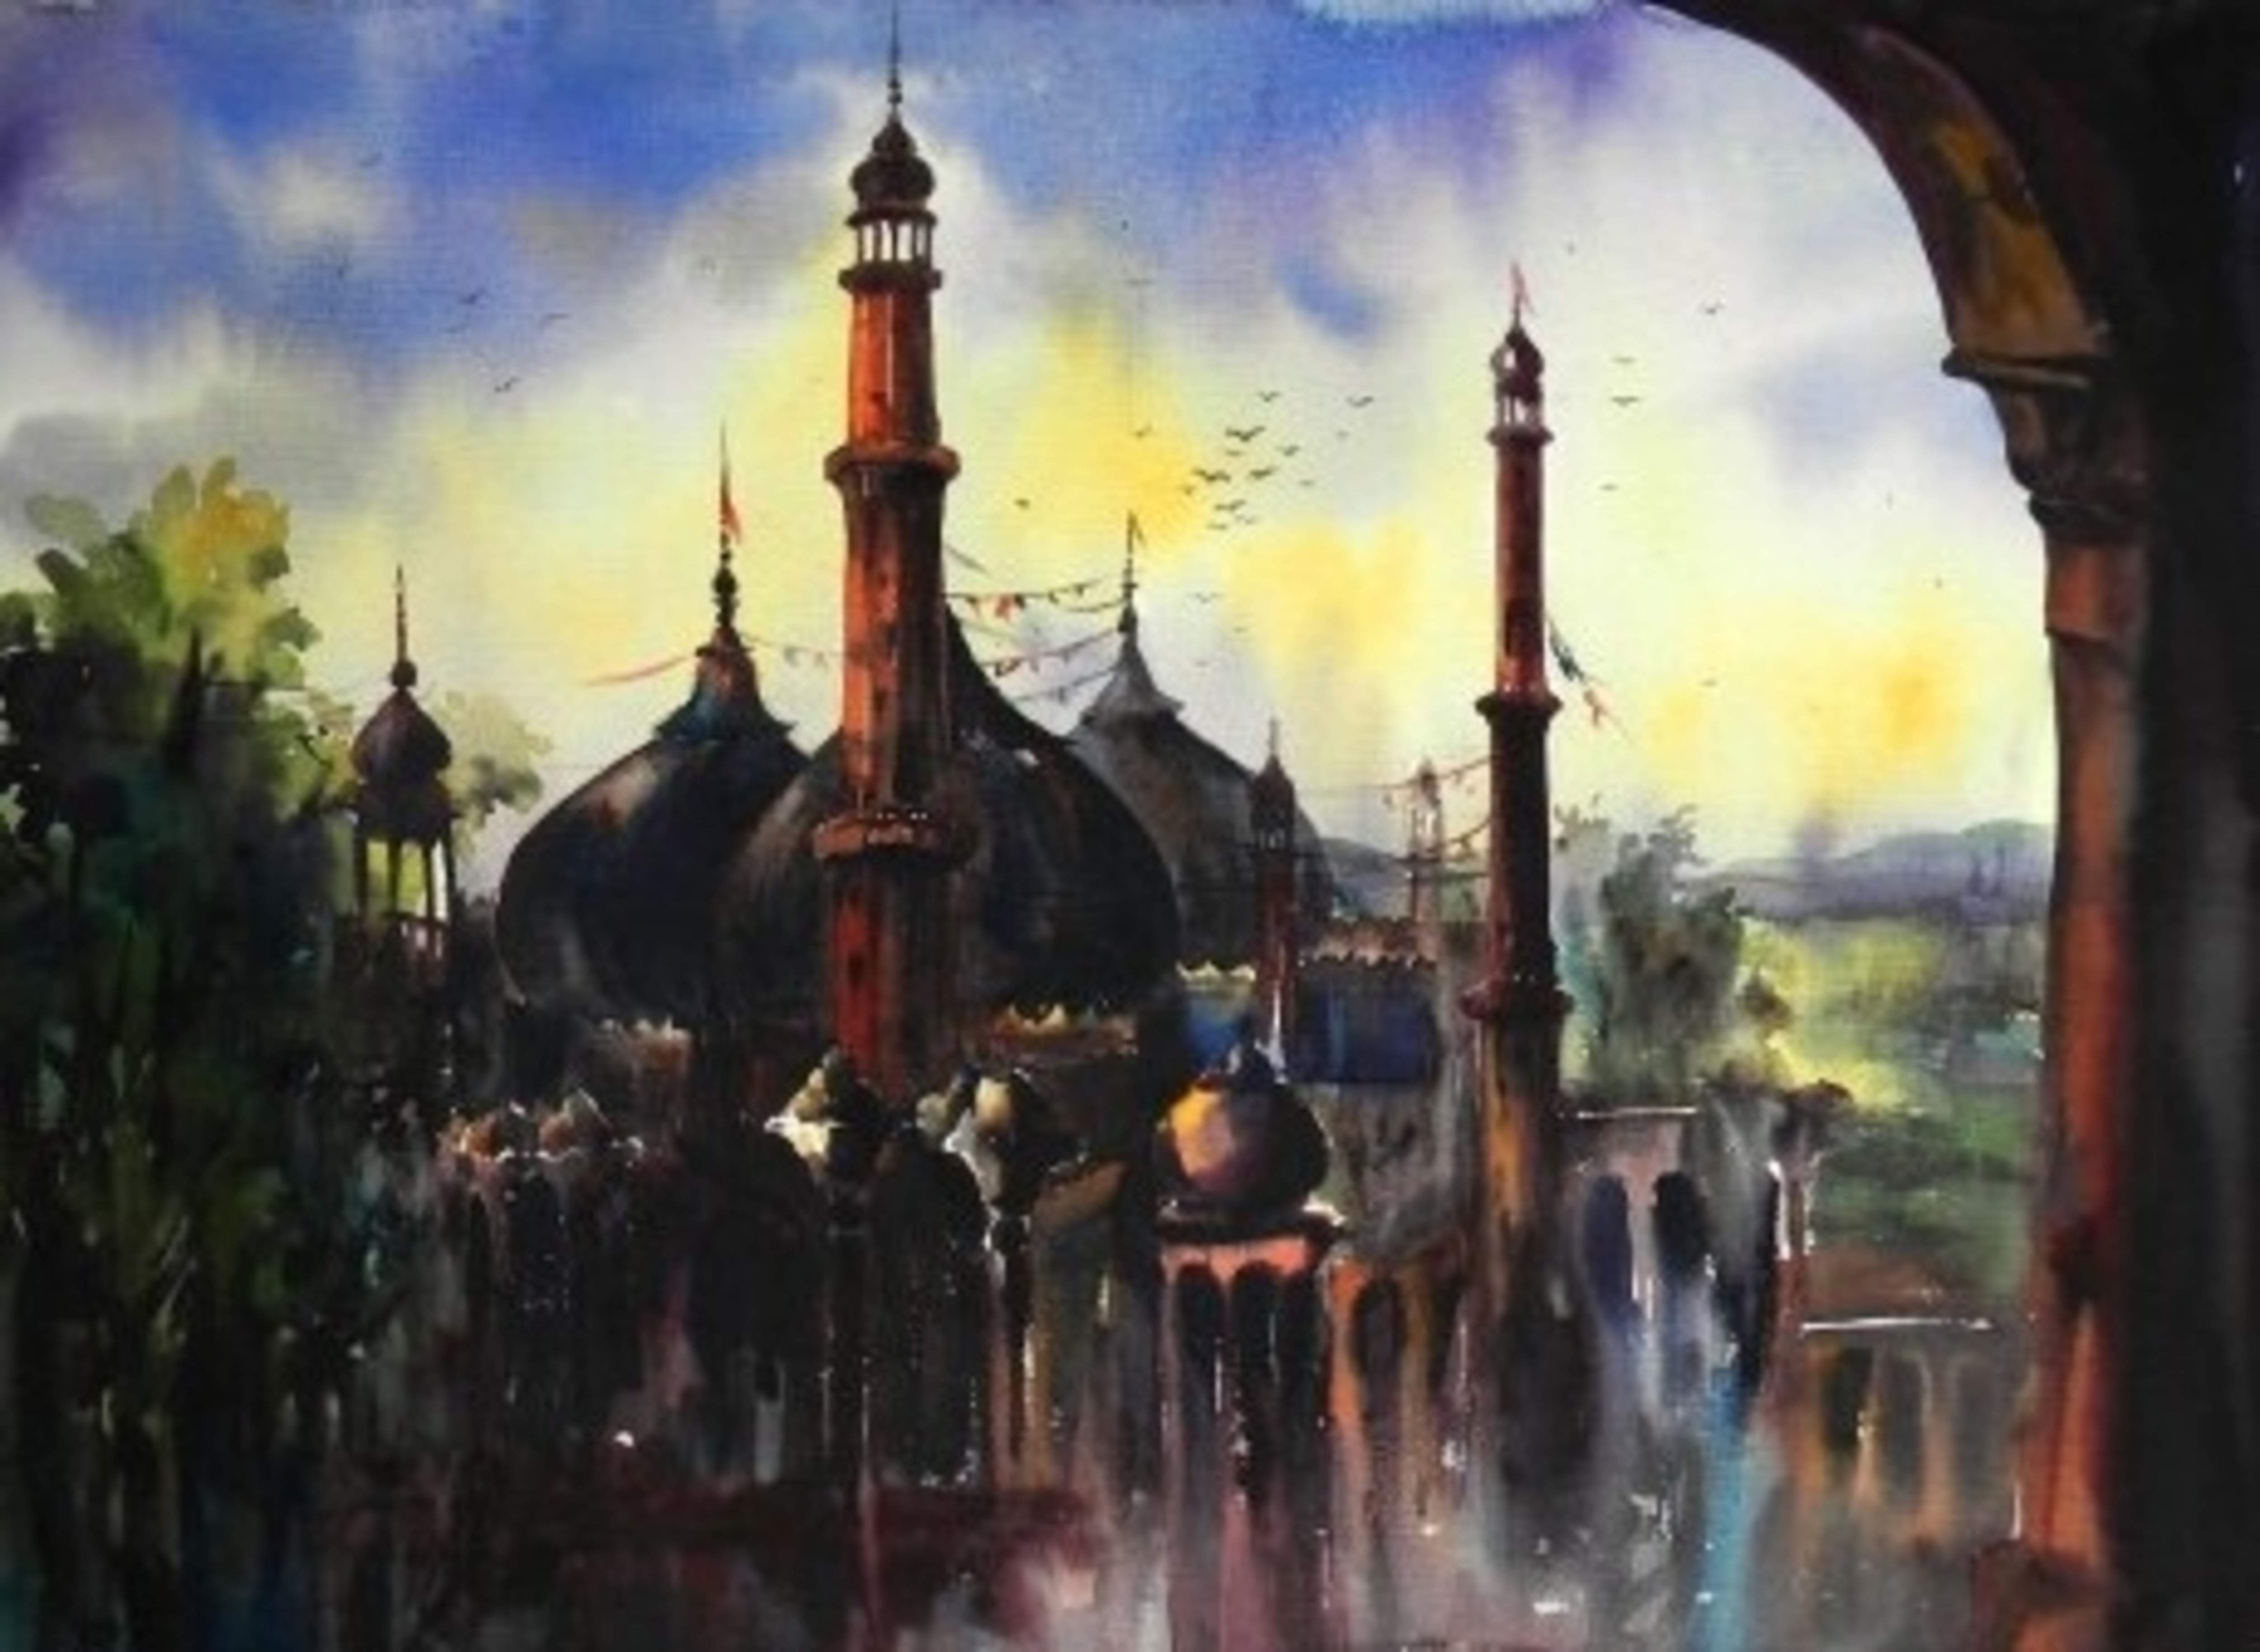 Old Lucknow Painting (source: https://huesnstrokes.com/home/584-old-lucknow-i.html)